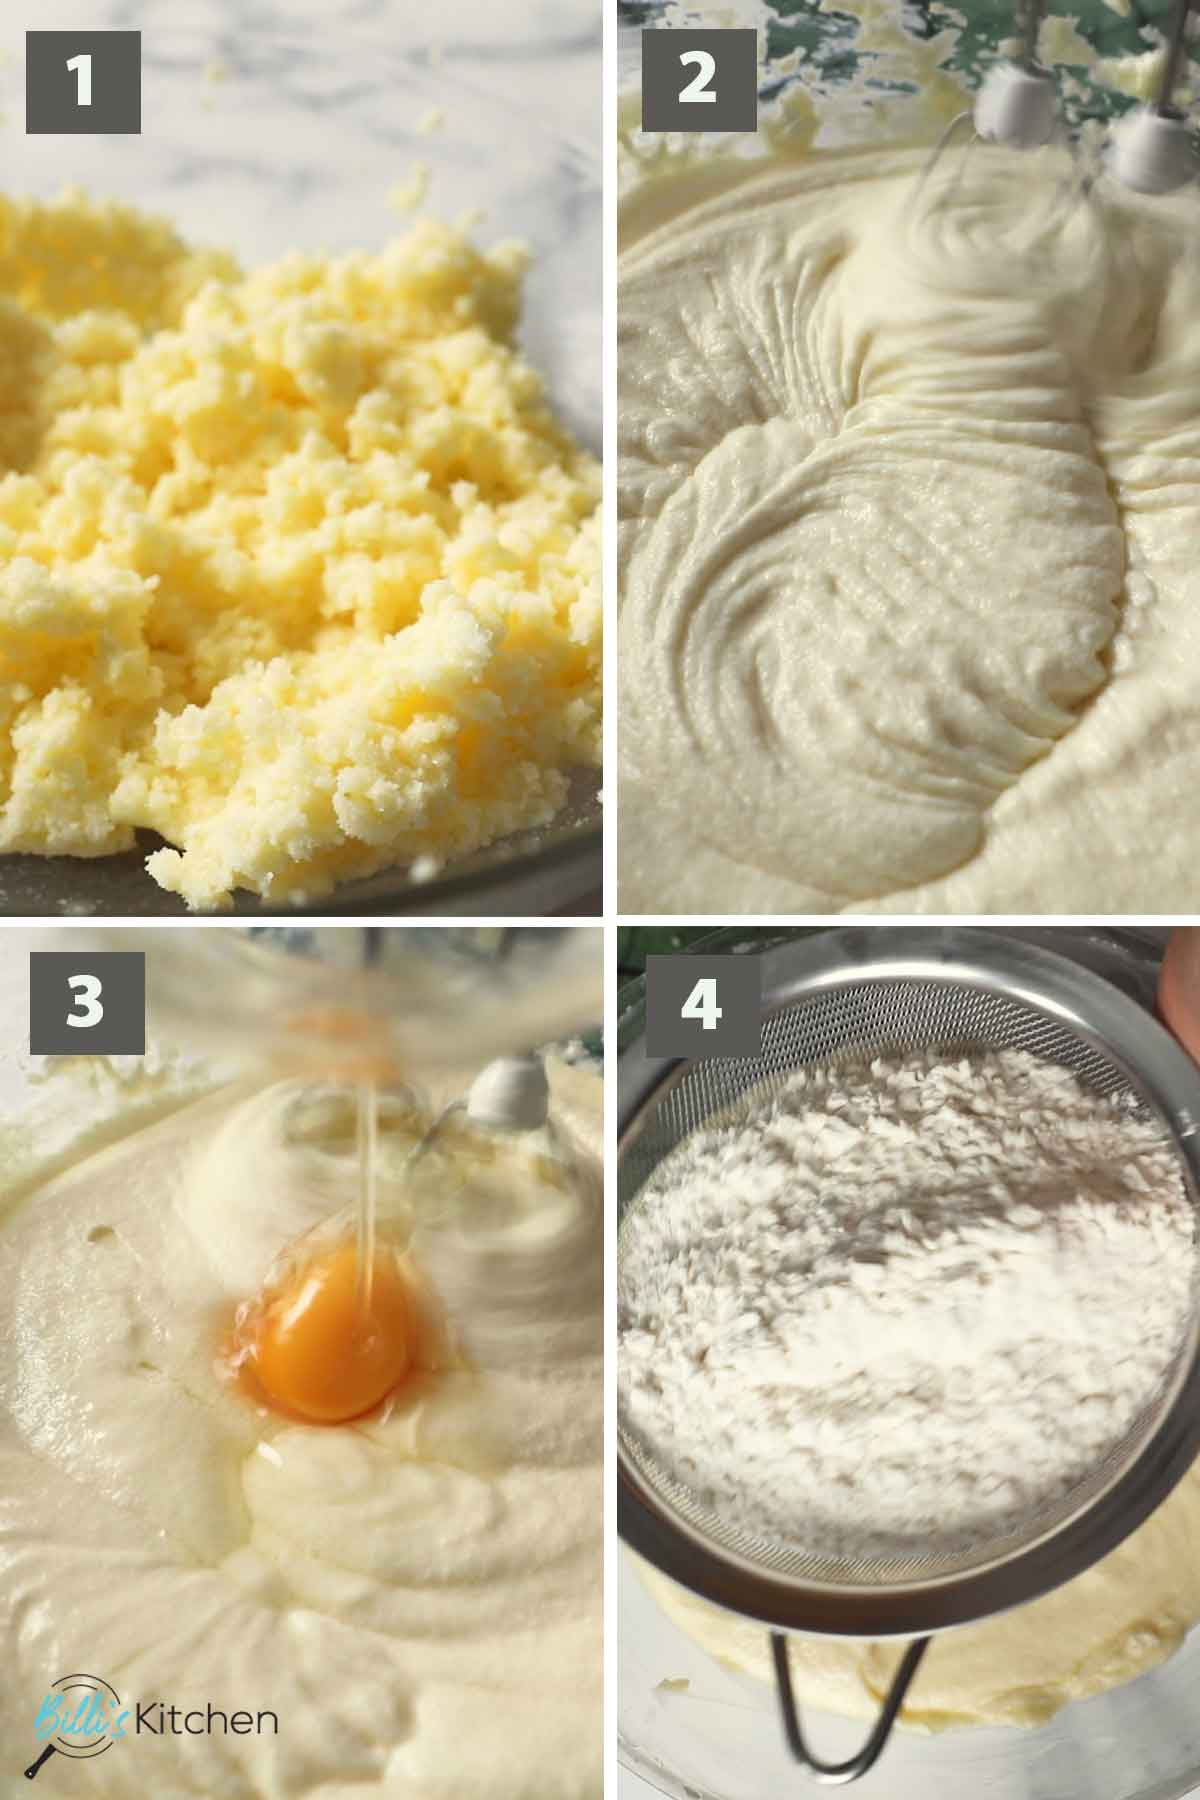 First part of a collage of images showing the step by step process on how to make Lemon Ricotta Cake.